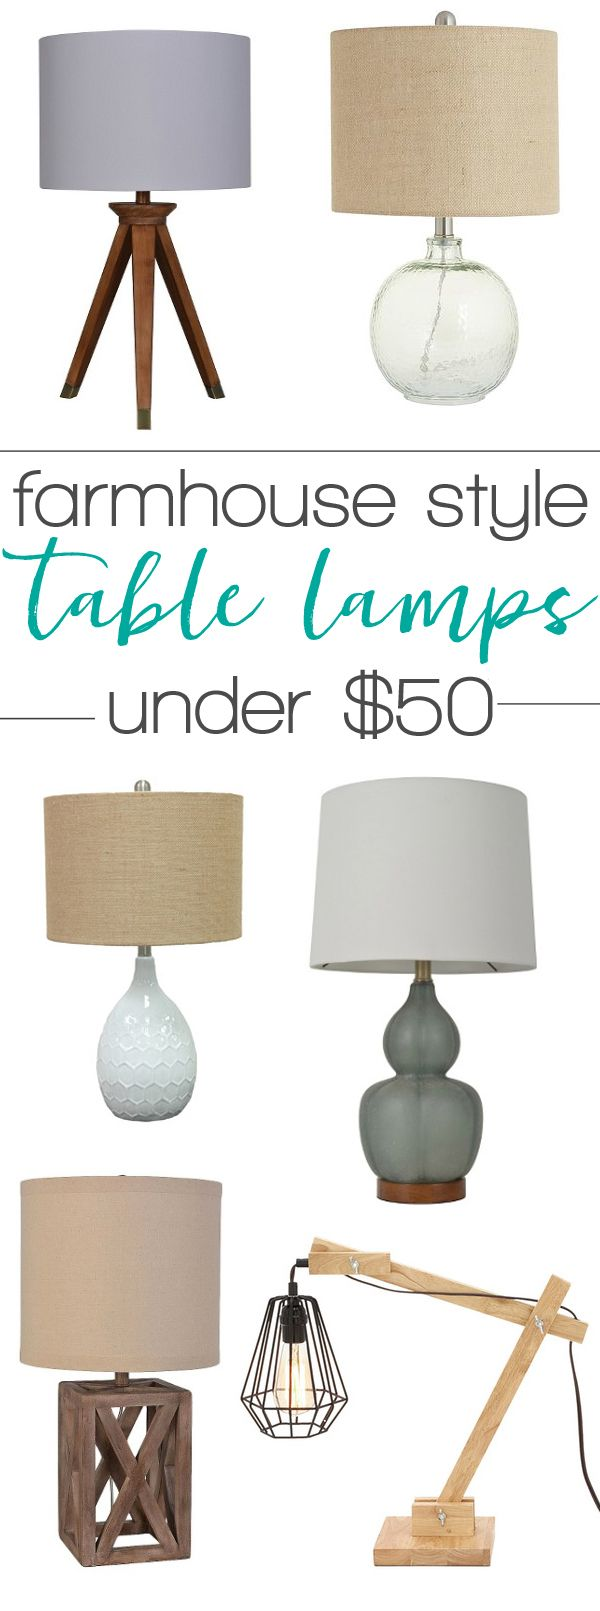 Beautiful farmhouse style table lamps - all under $50! Great lighting ideas for the home!